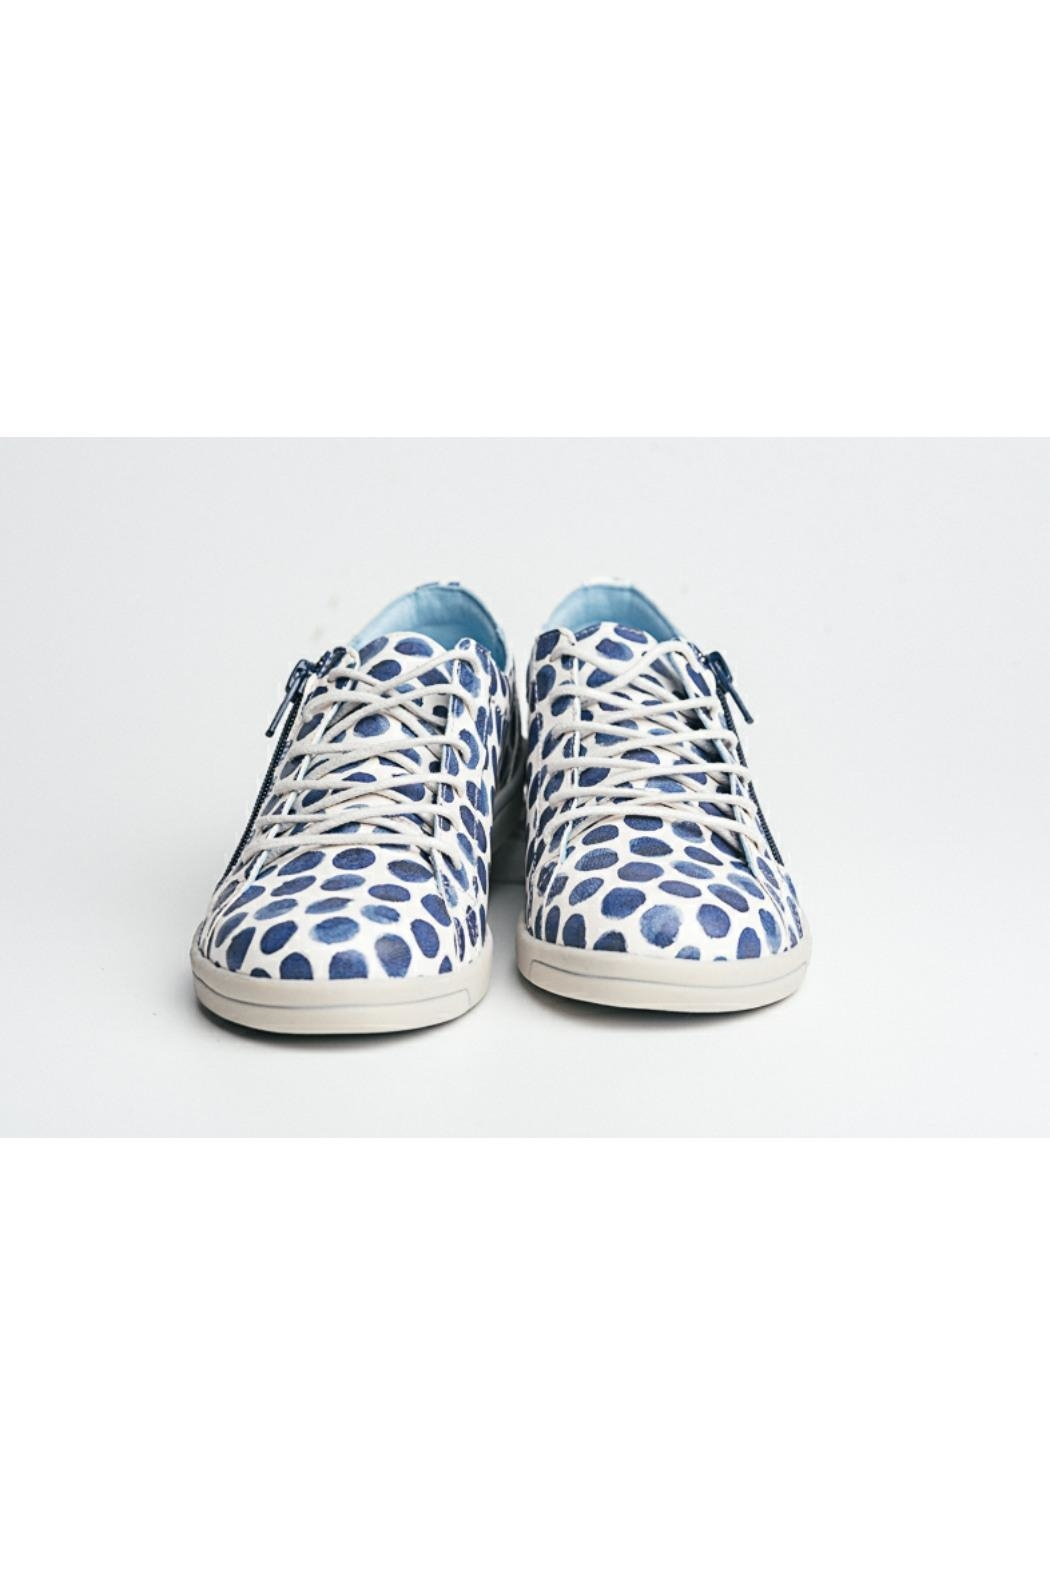 Cloud Print Leather Sneaker - Back Cropped Image